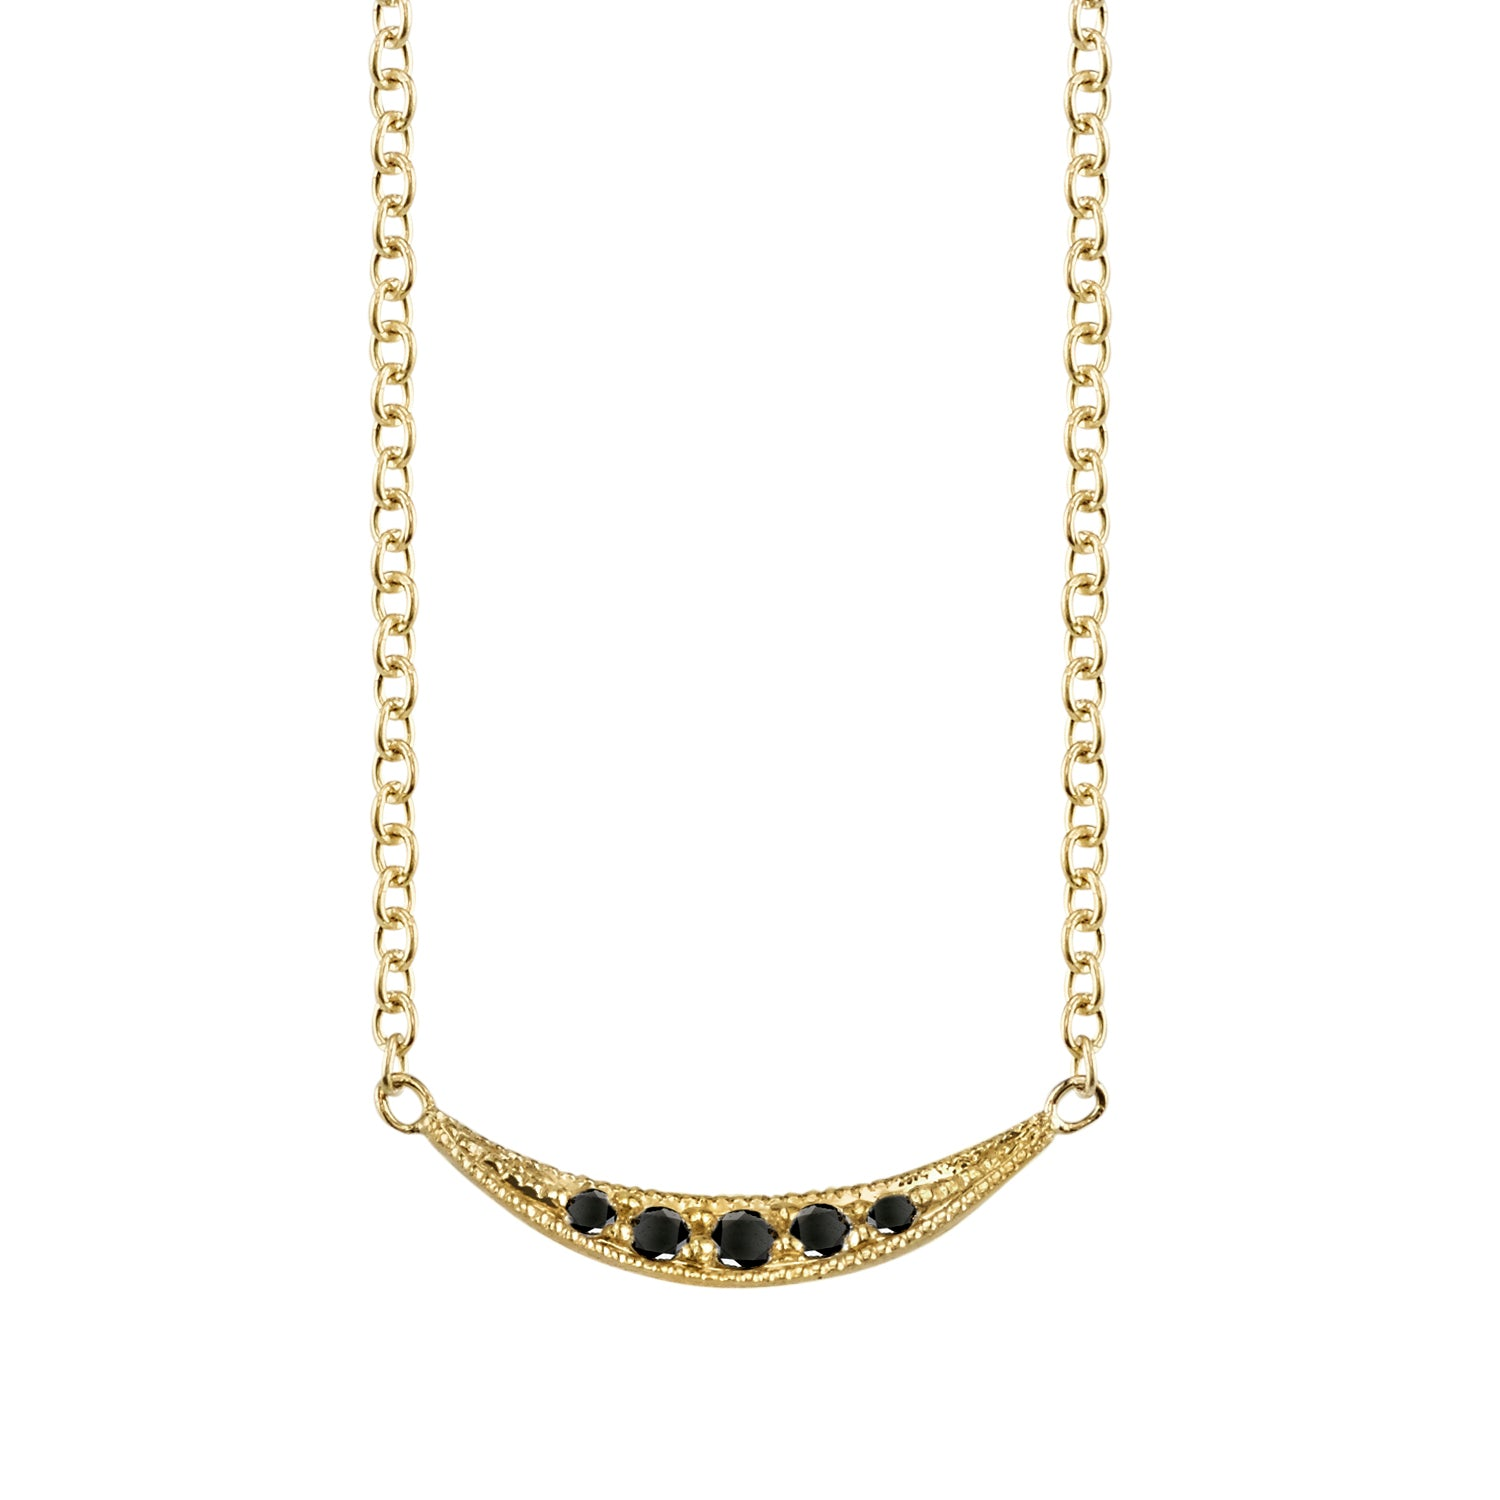 Black Diamond Crescent Necklace by Lizzie Mandler for Broken English Jewelry